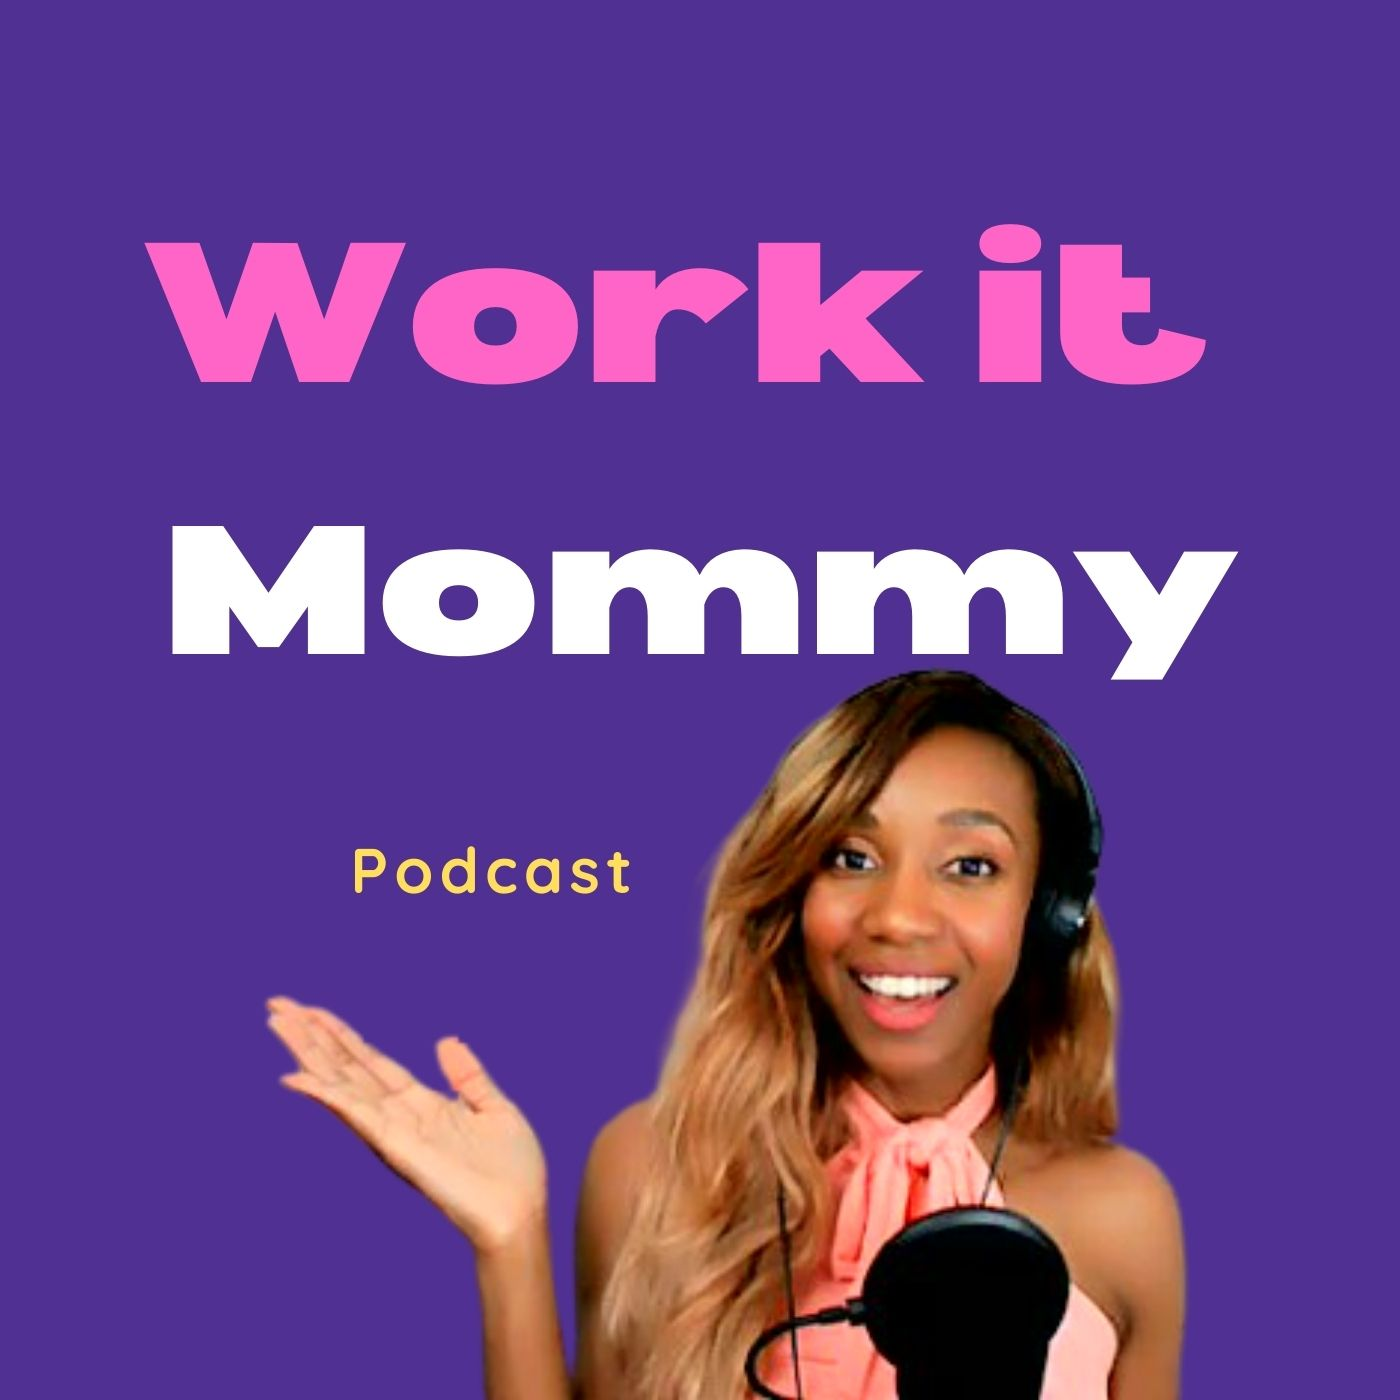 WORK IT MOMMY PODCAST- JOIN US!